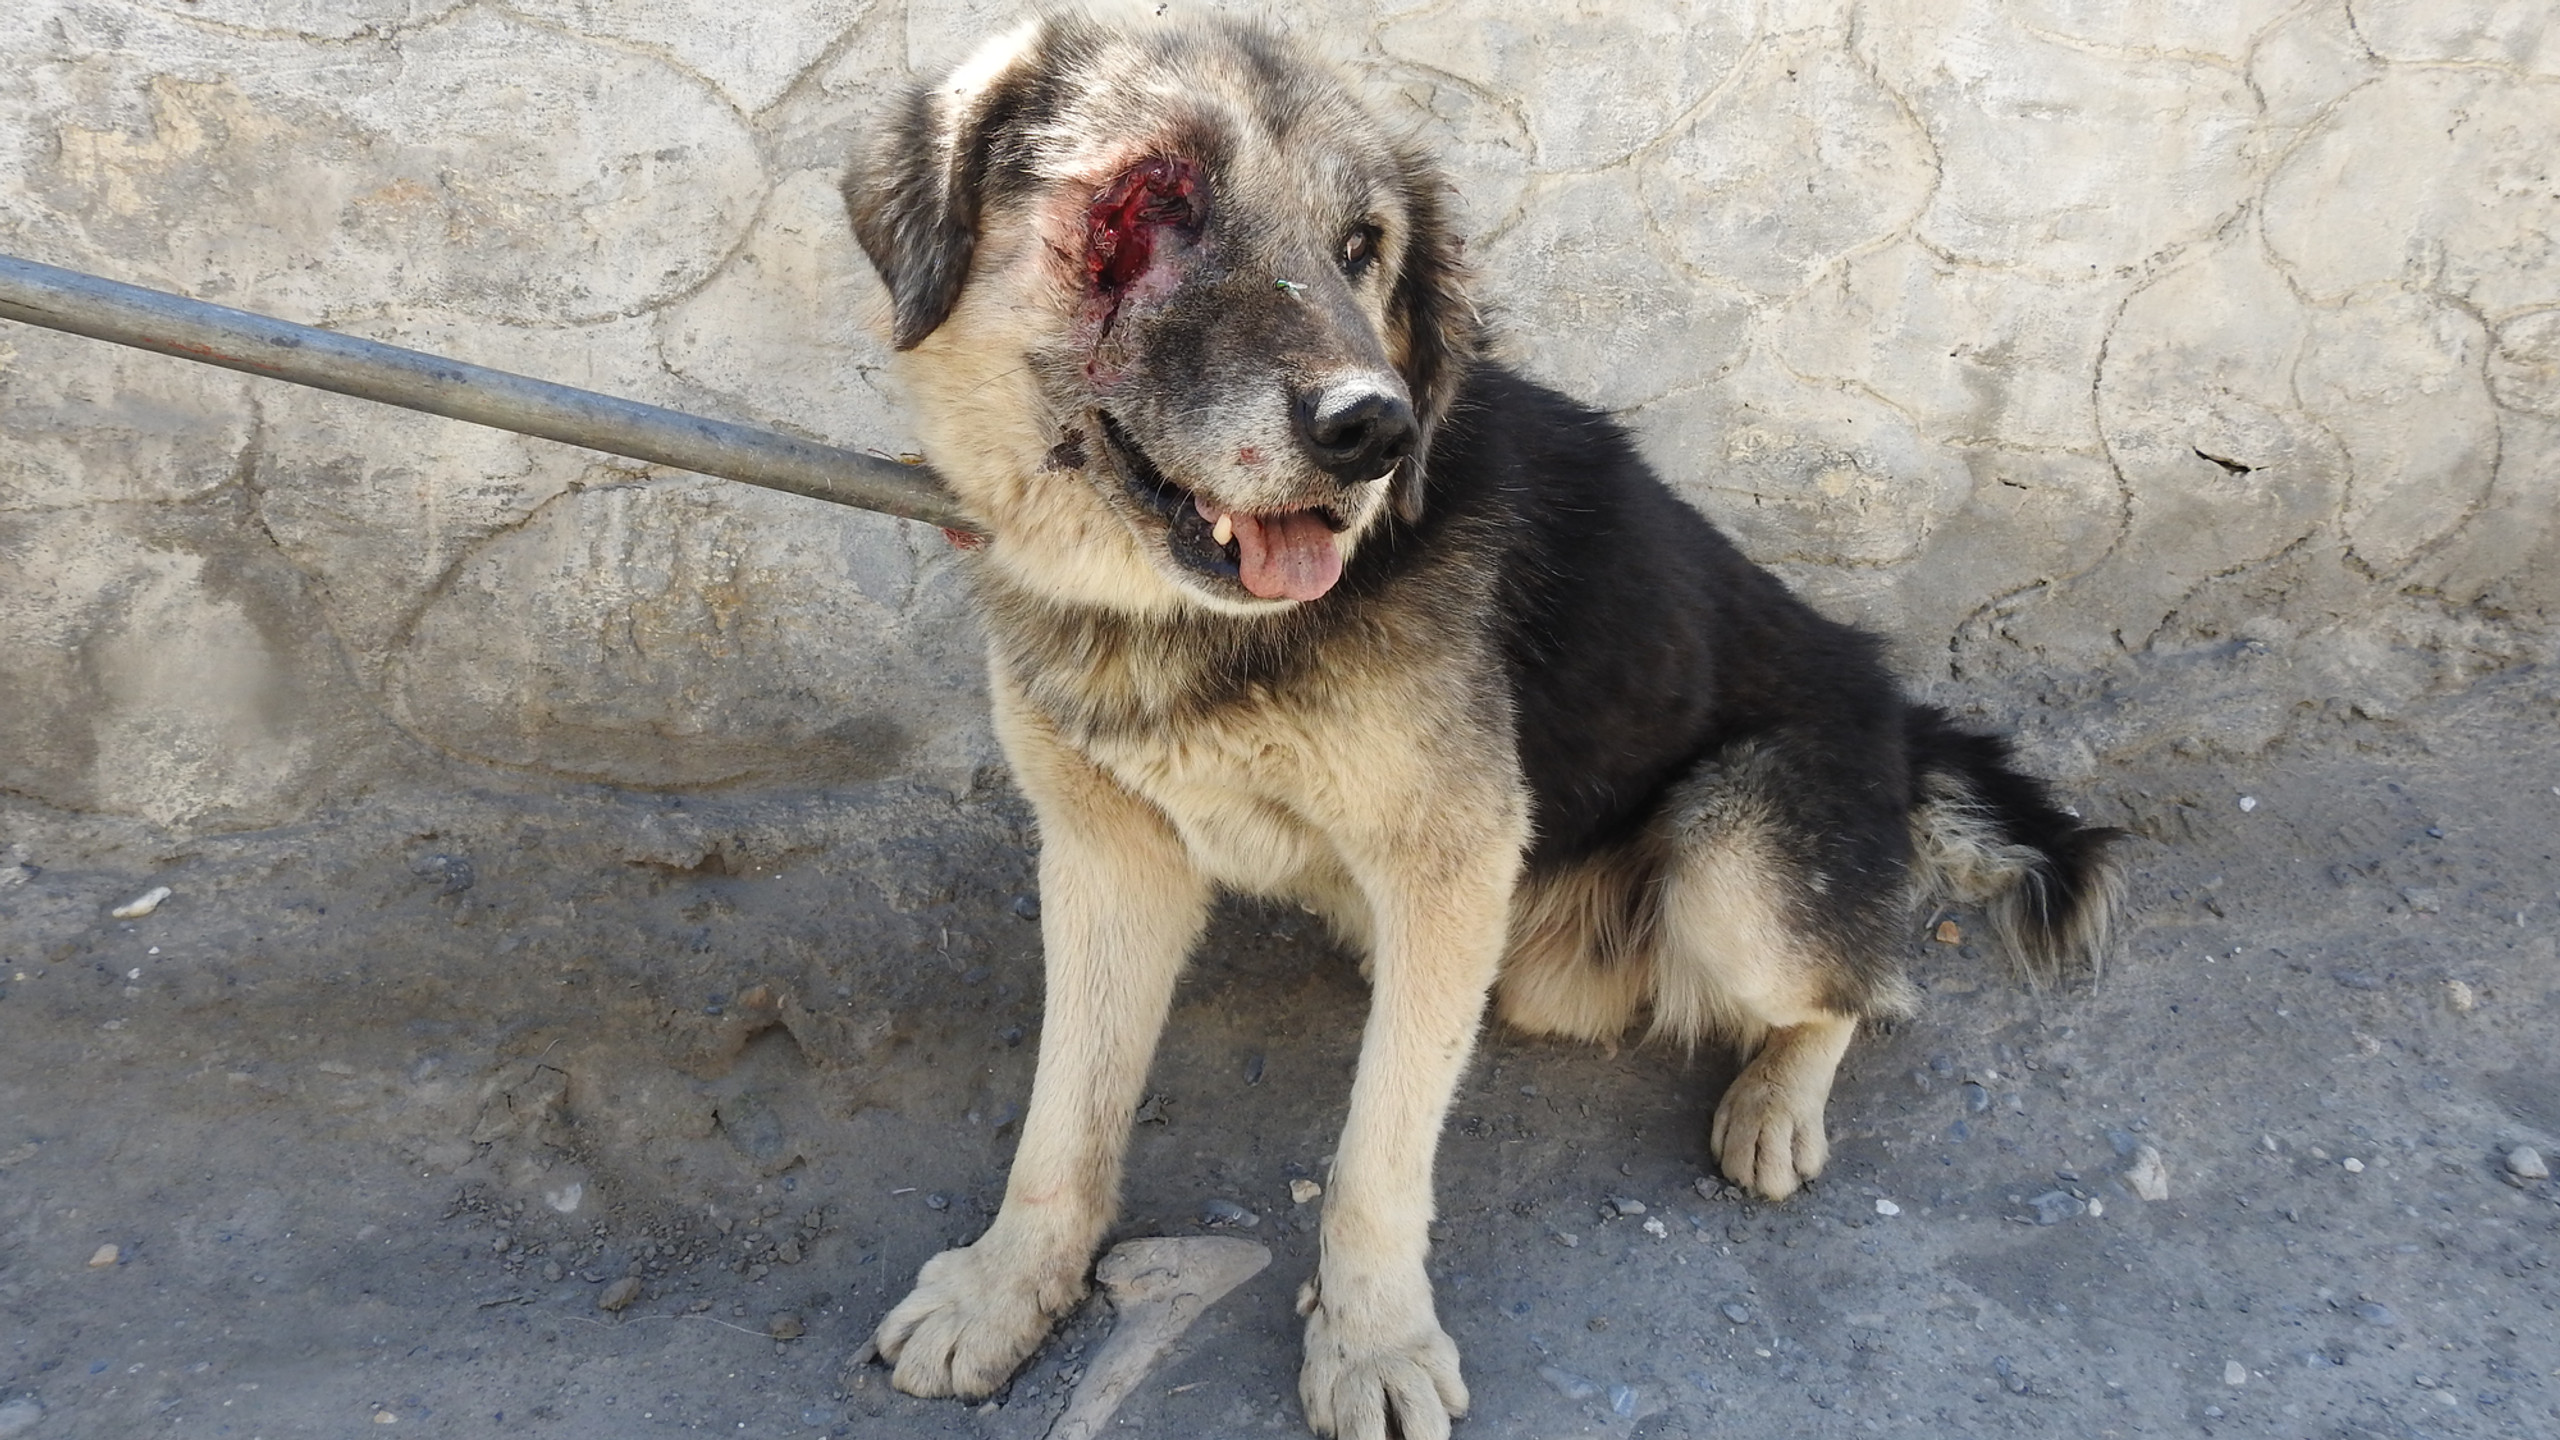 Dog with eye and ear injury